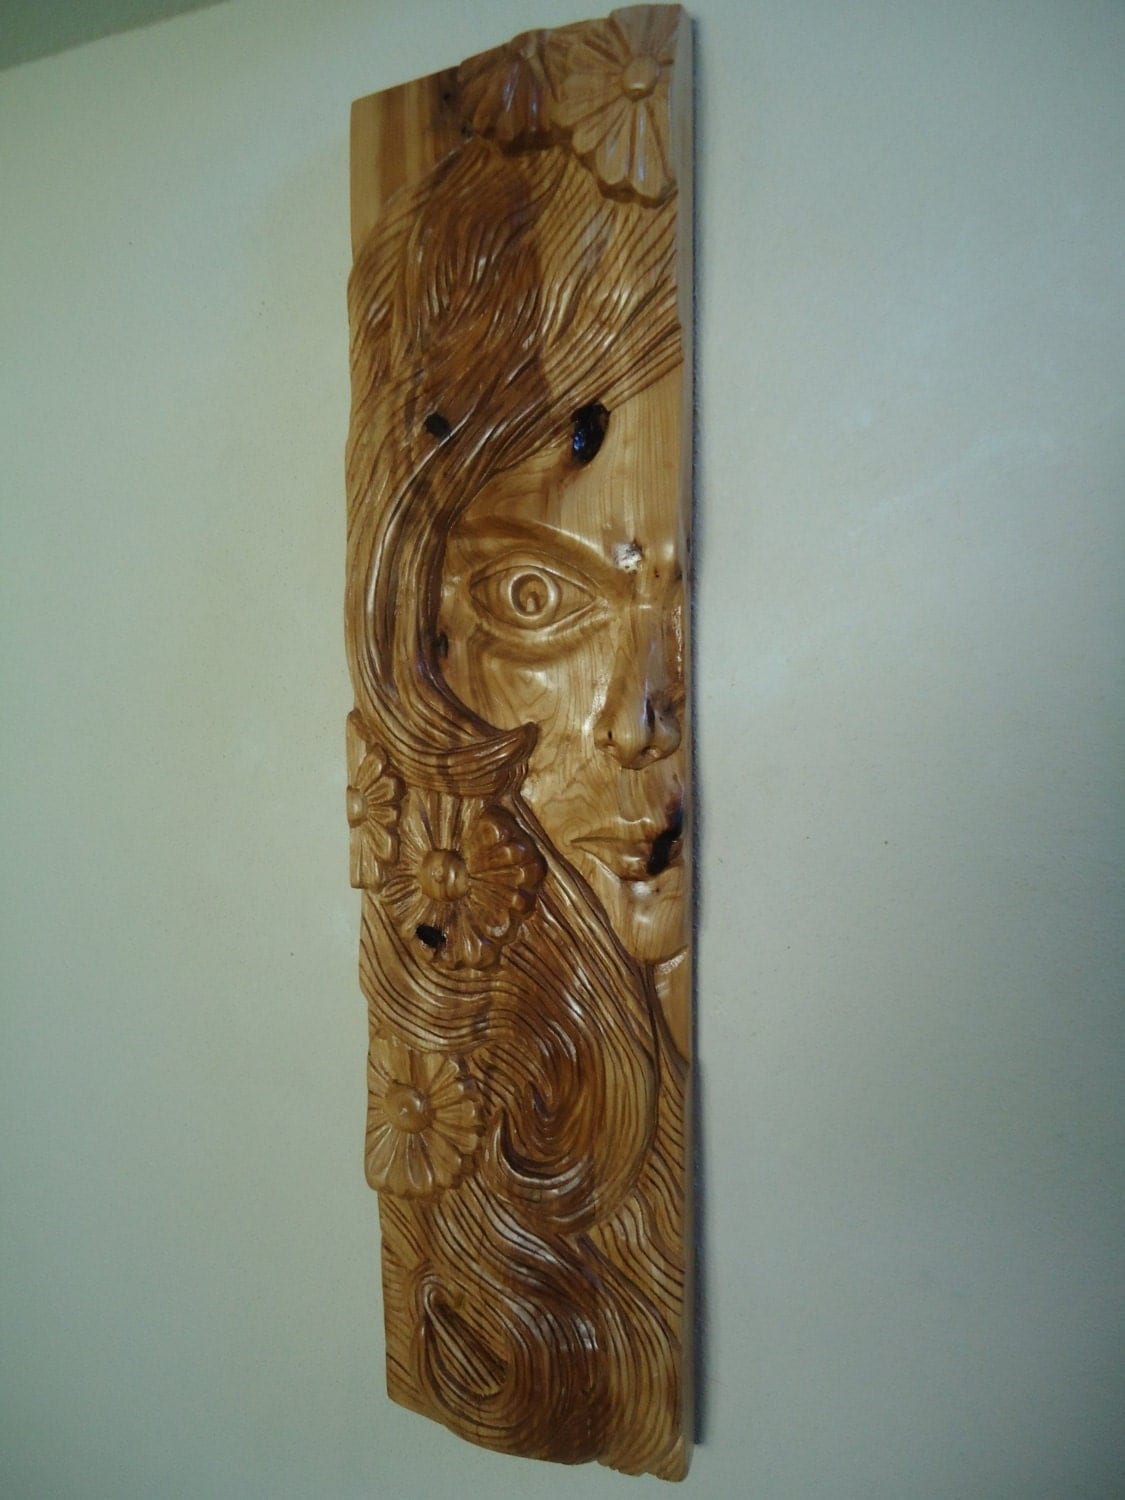 Large wood carving sculpture wall art